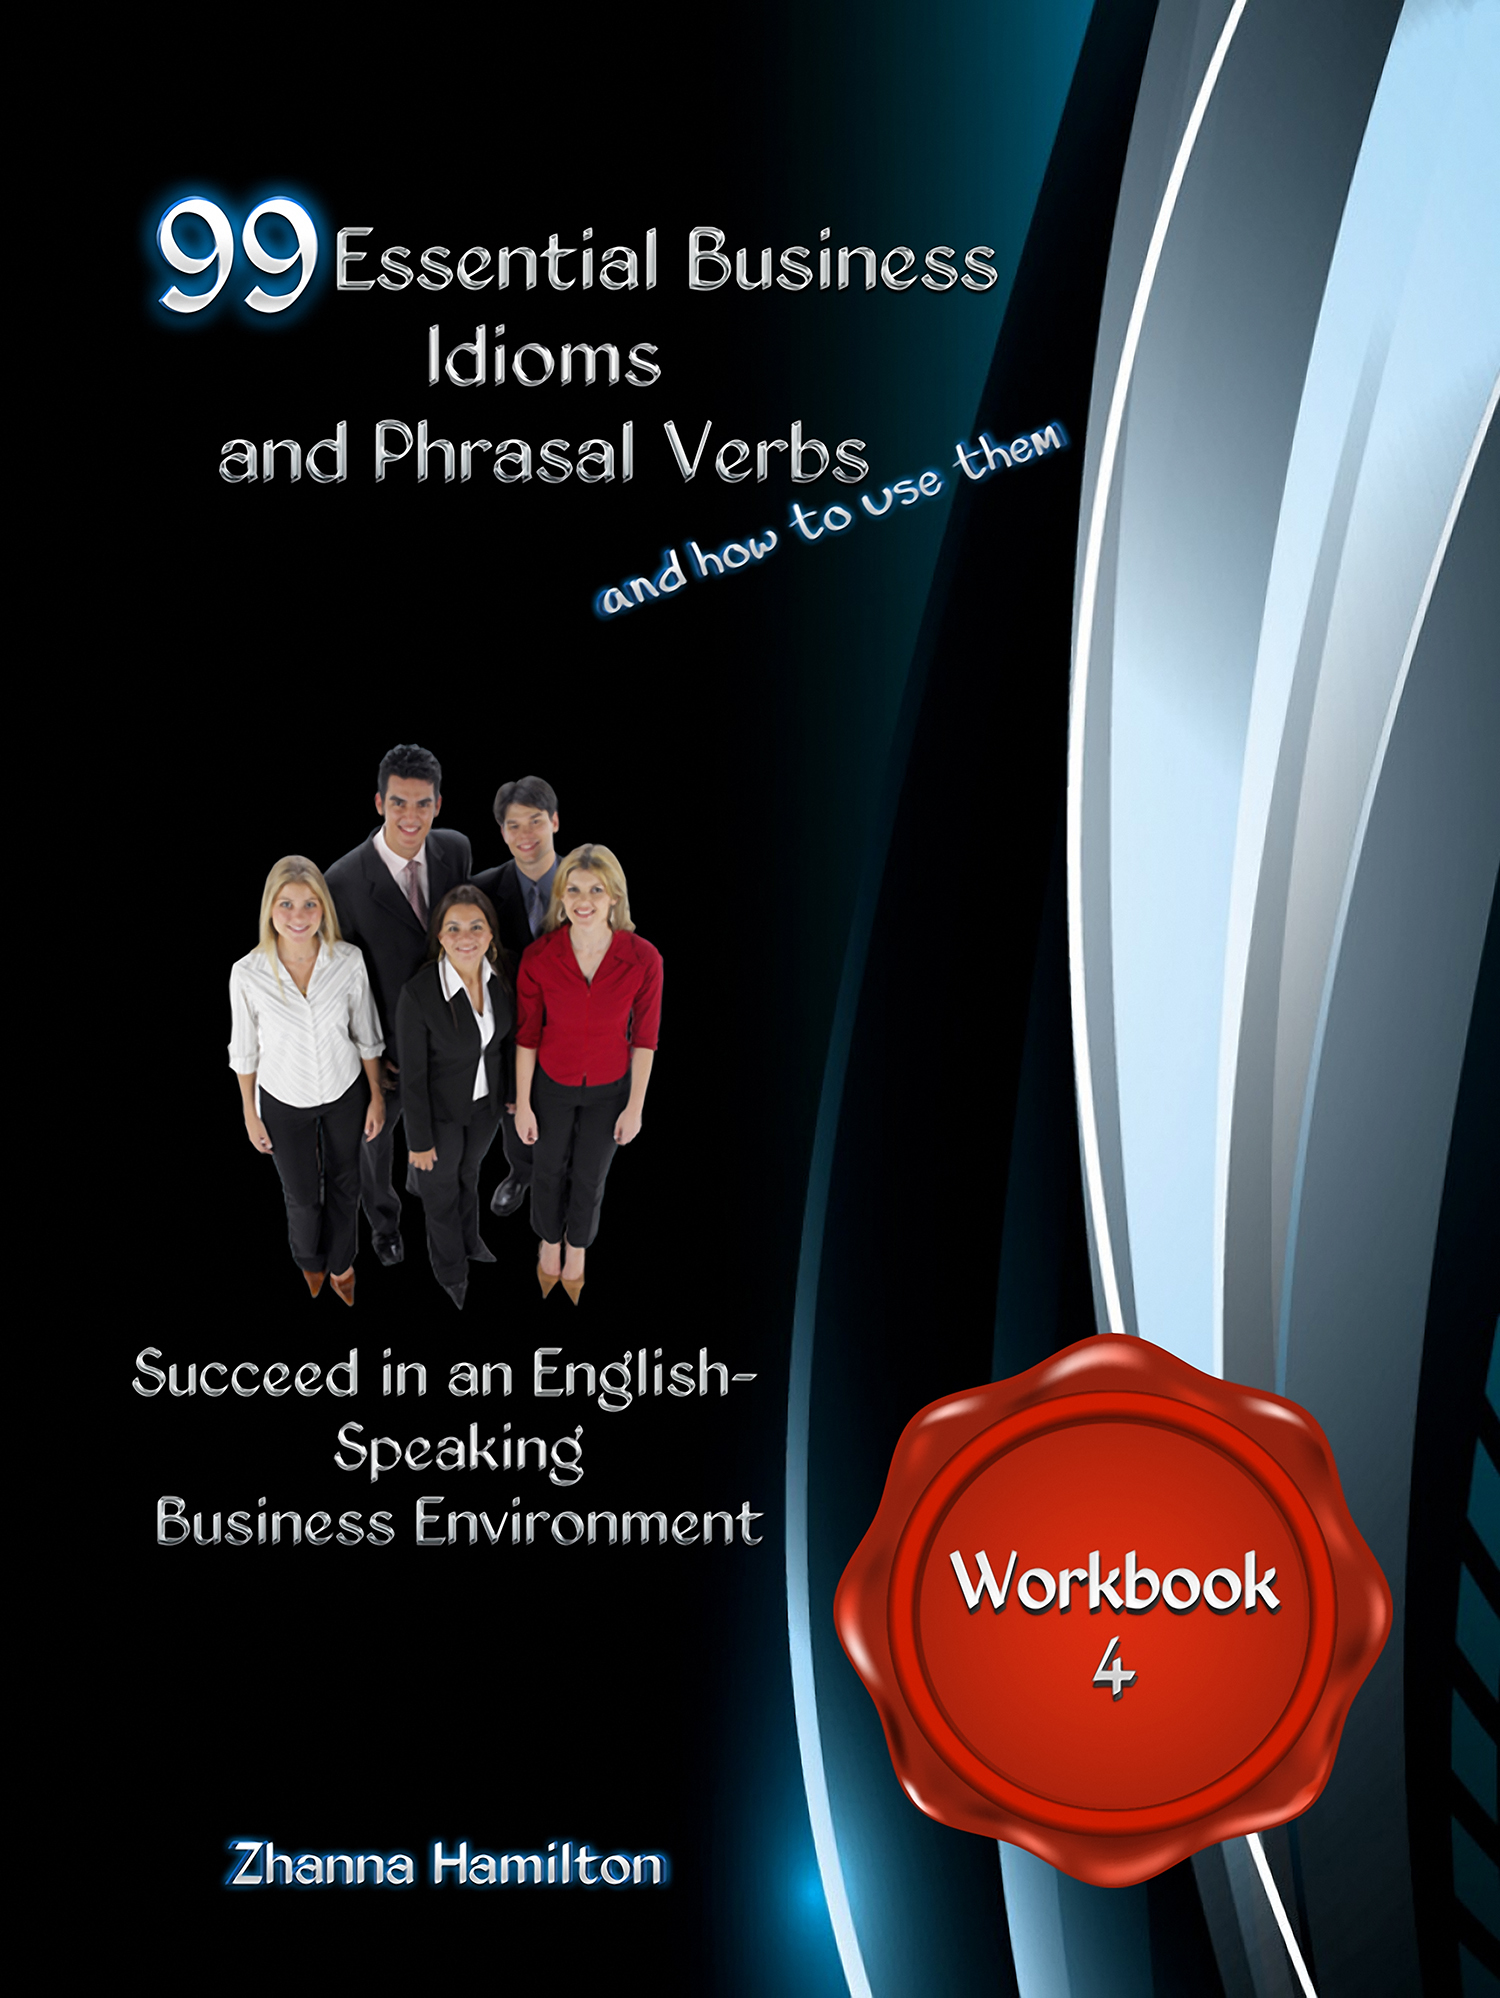 99 Essential Business Idioms and Phrasal Verbs: Succeed in an English-Speaking Business Environment - Workbook 4